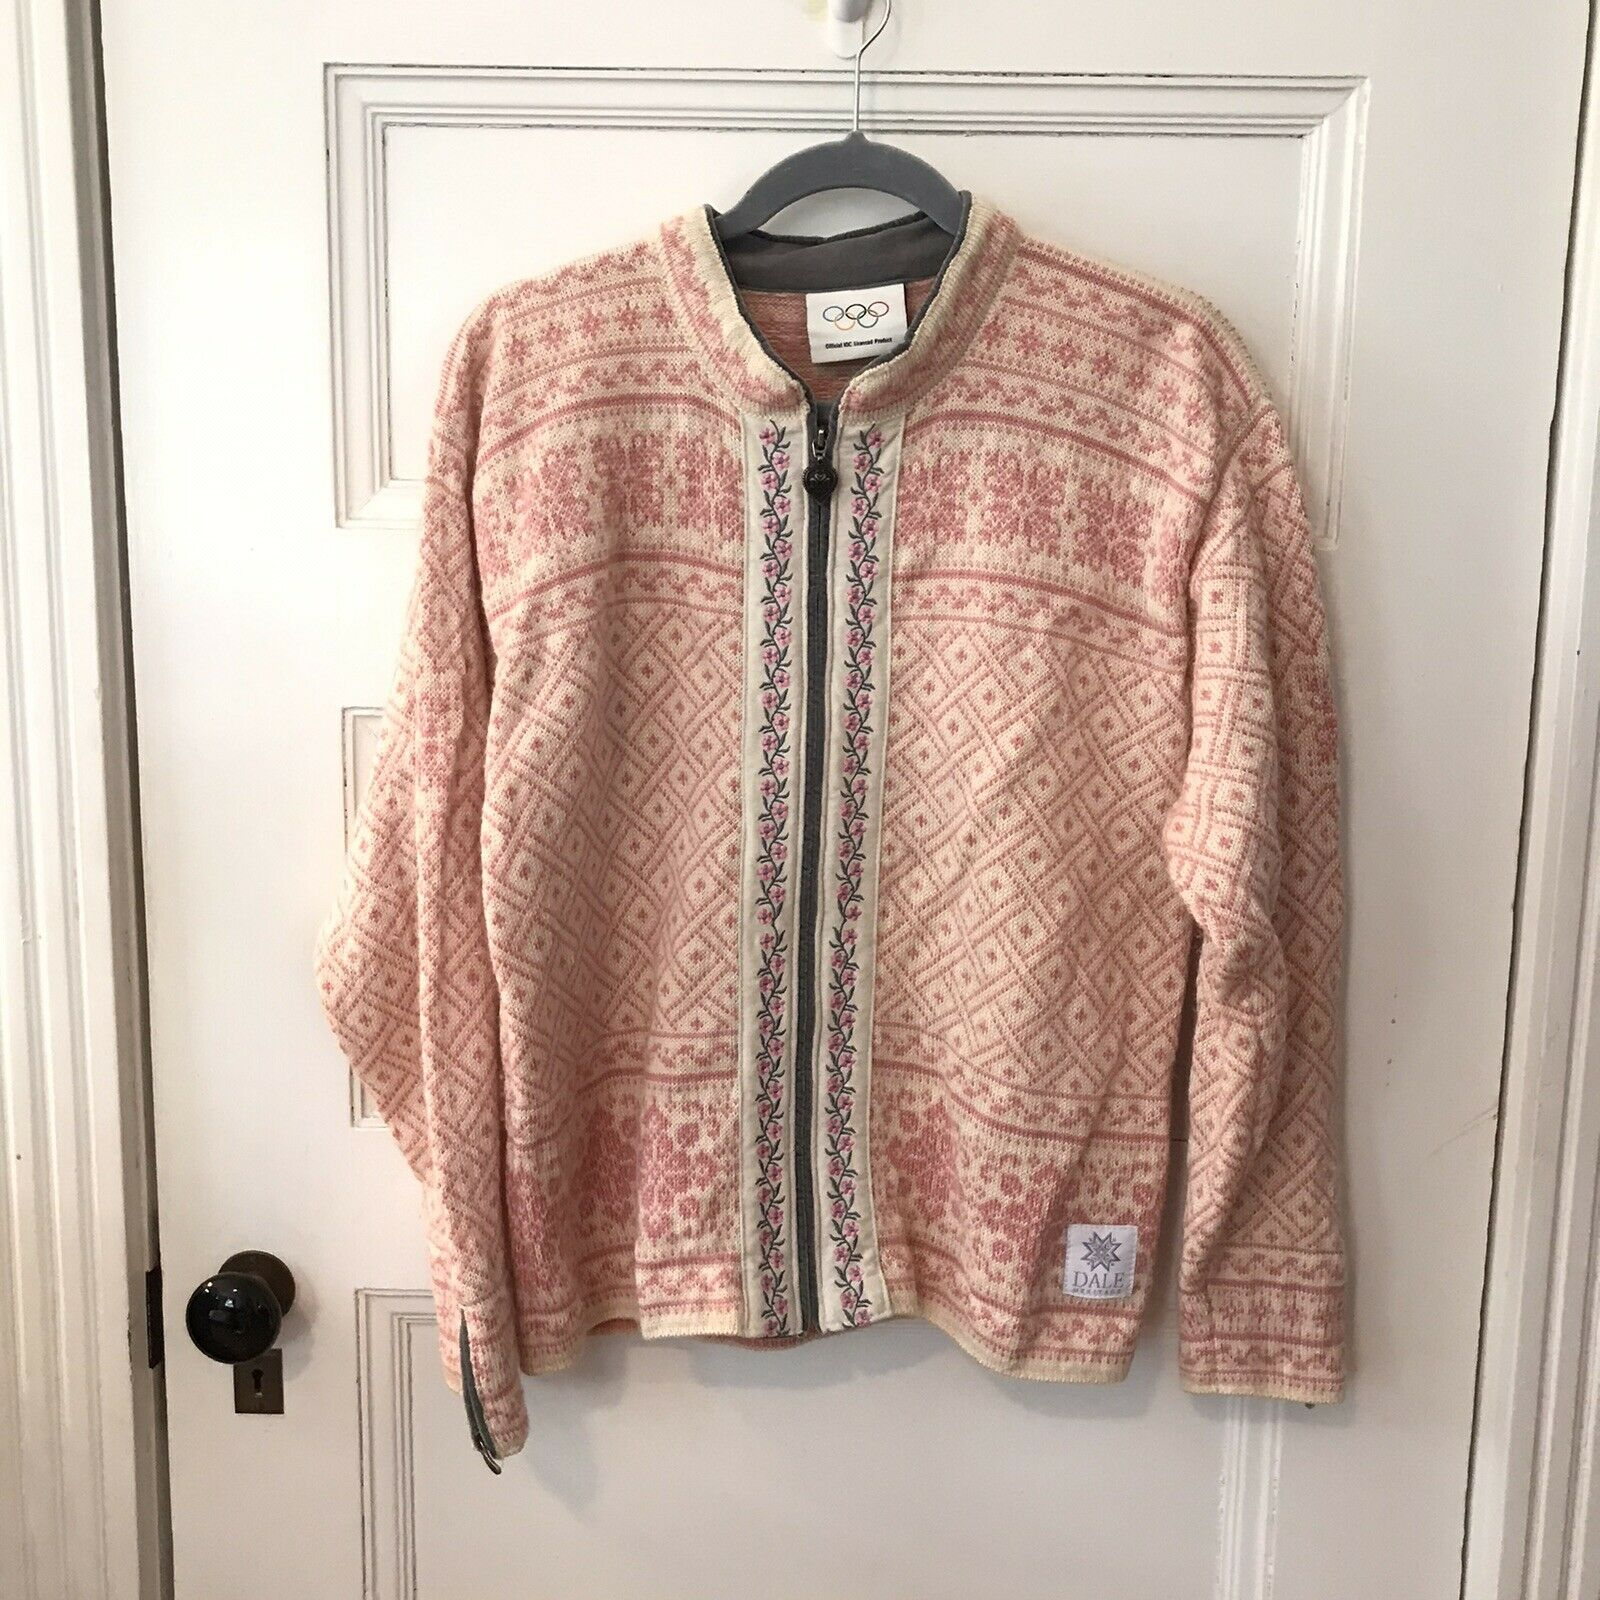 Dale of Norway Pink Olympic Hand Knit Cardigan Sweater L Flowers Snowflake 1980s